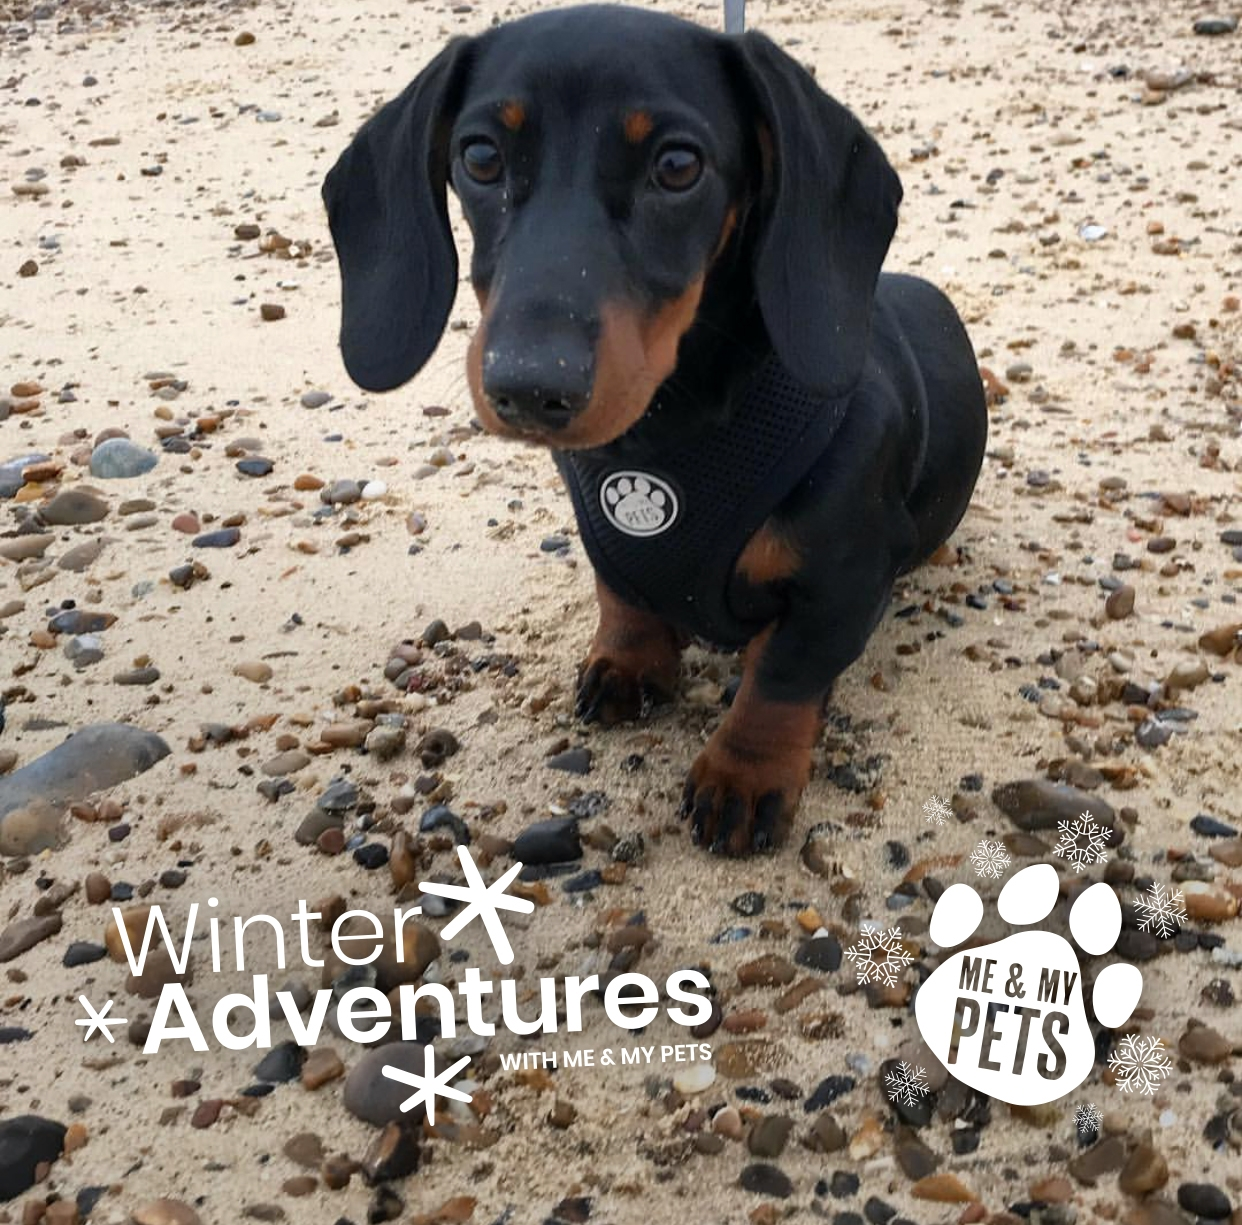 gorgeous puppy dachshund in black and tan wearing a black mesh vest harness while at a pebbled beach